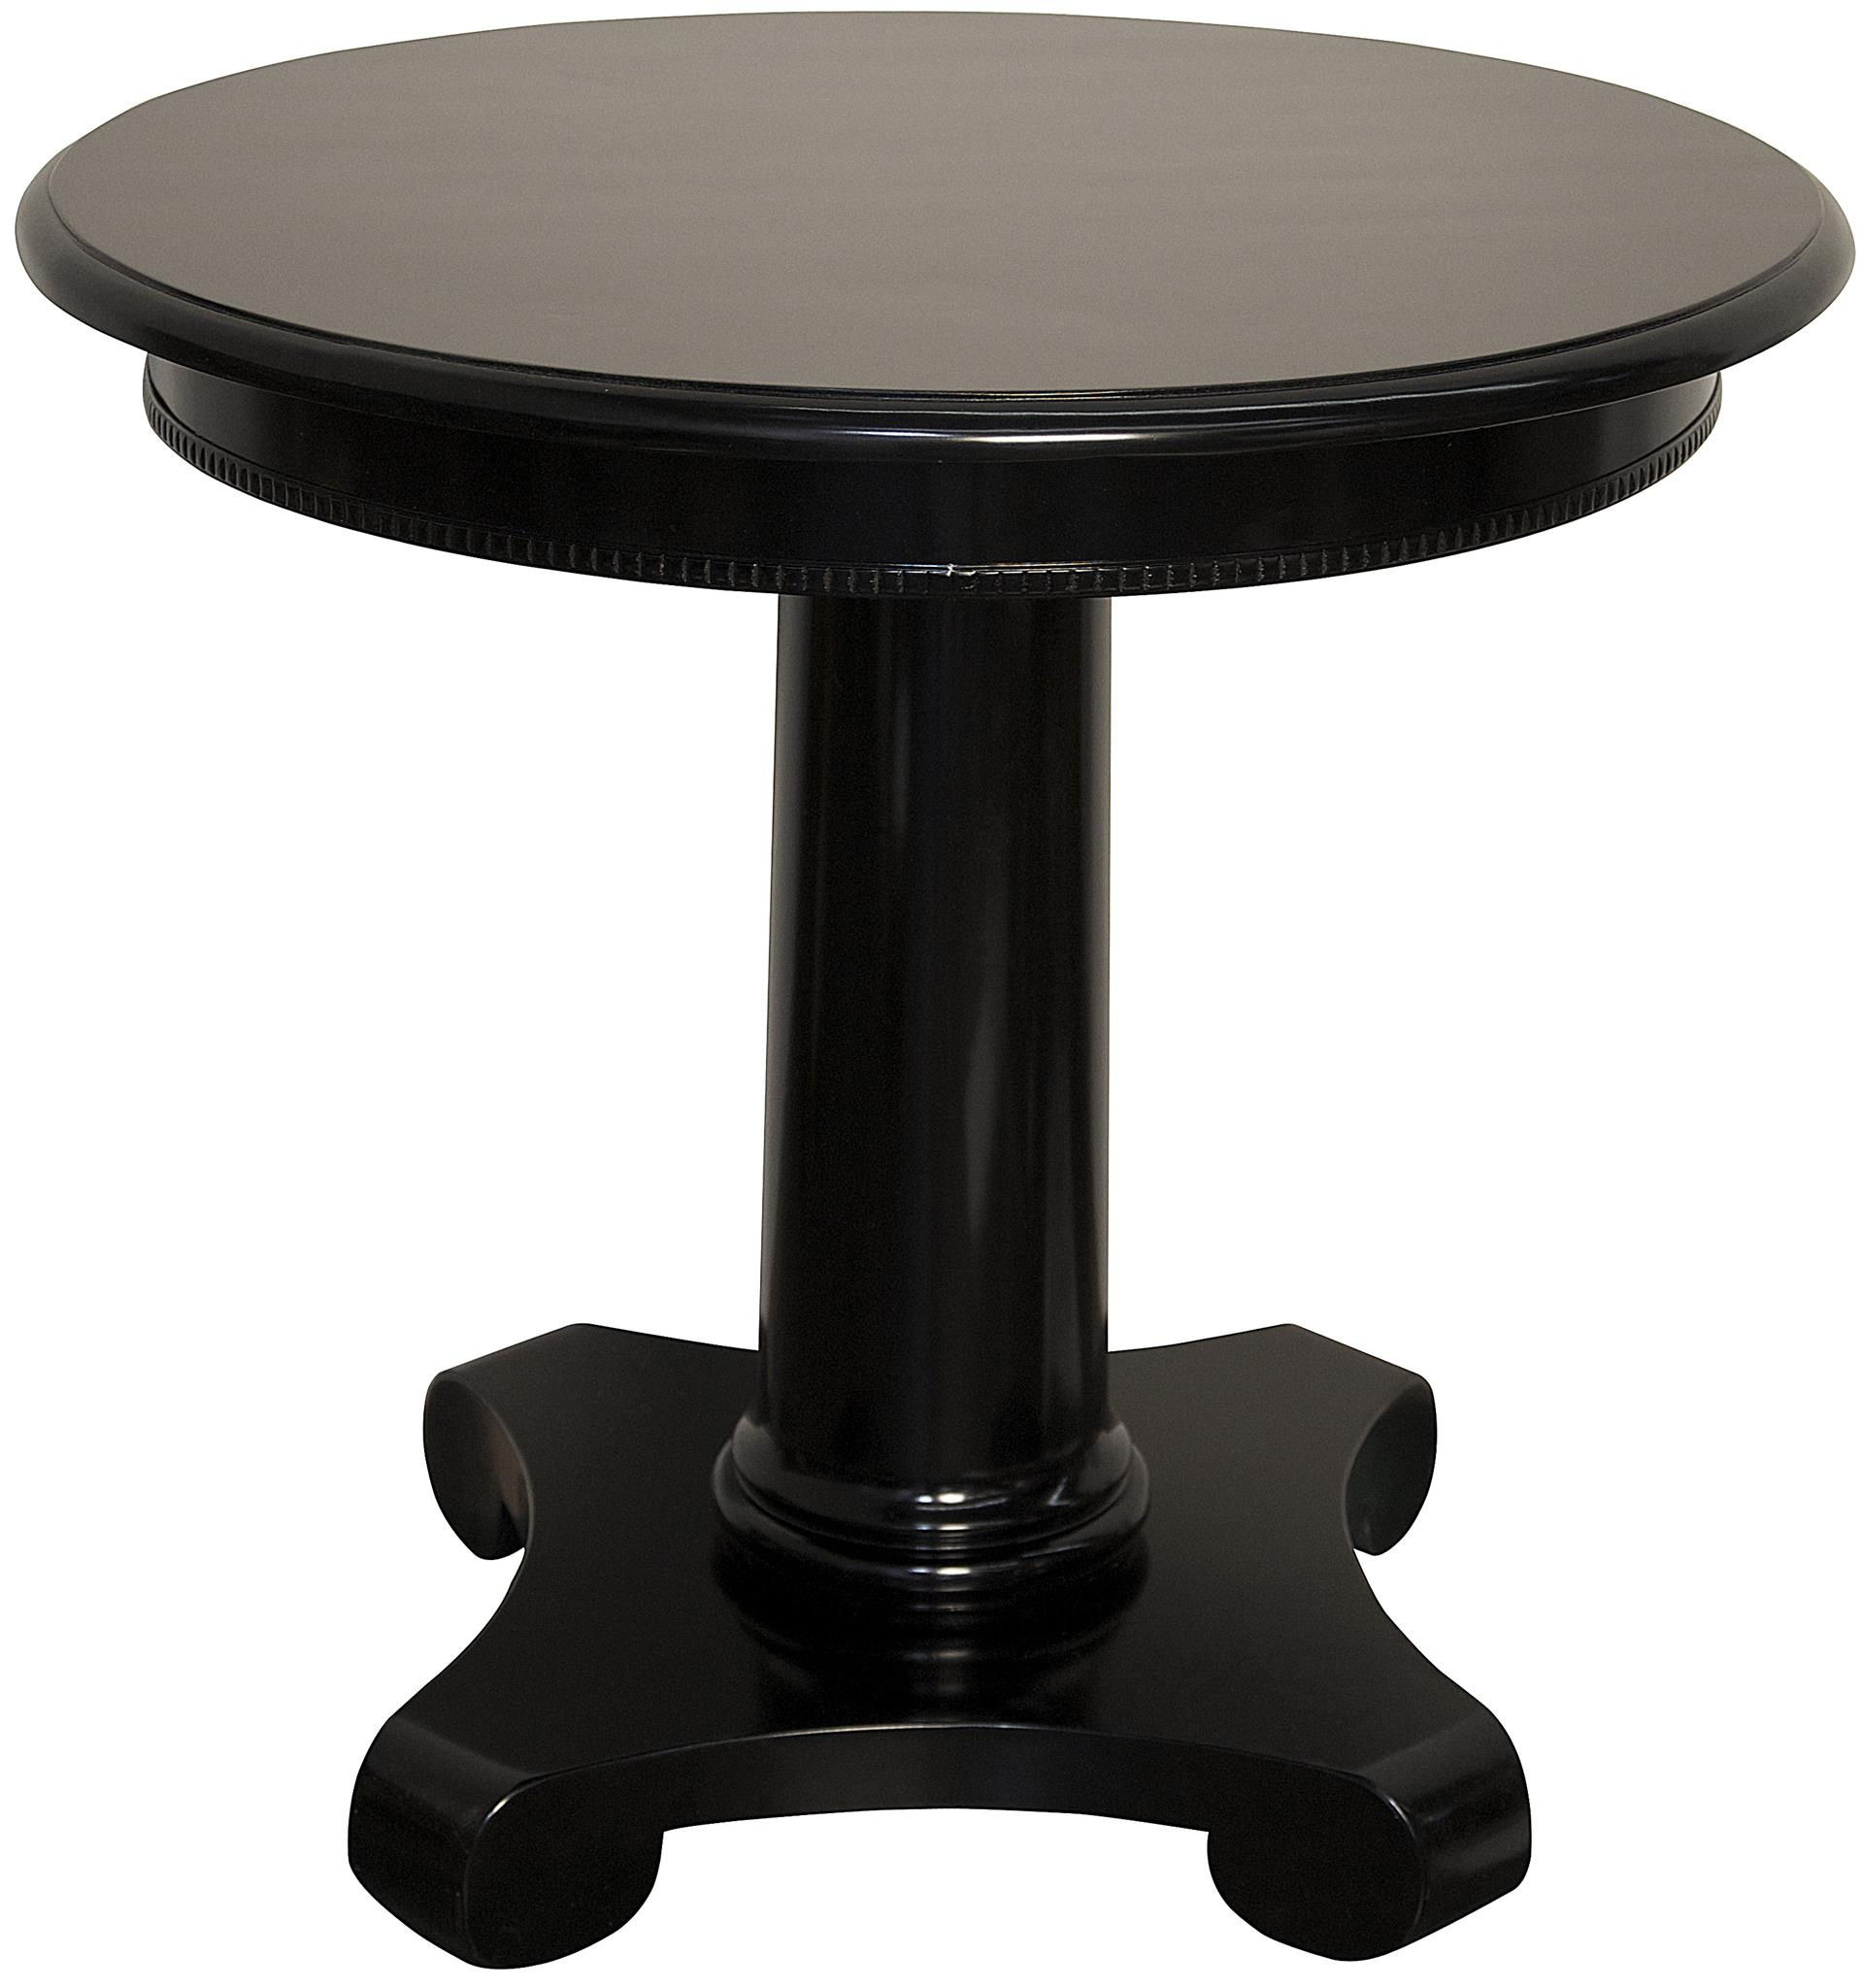 Elegant Antigua Round End Table, Black